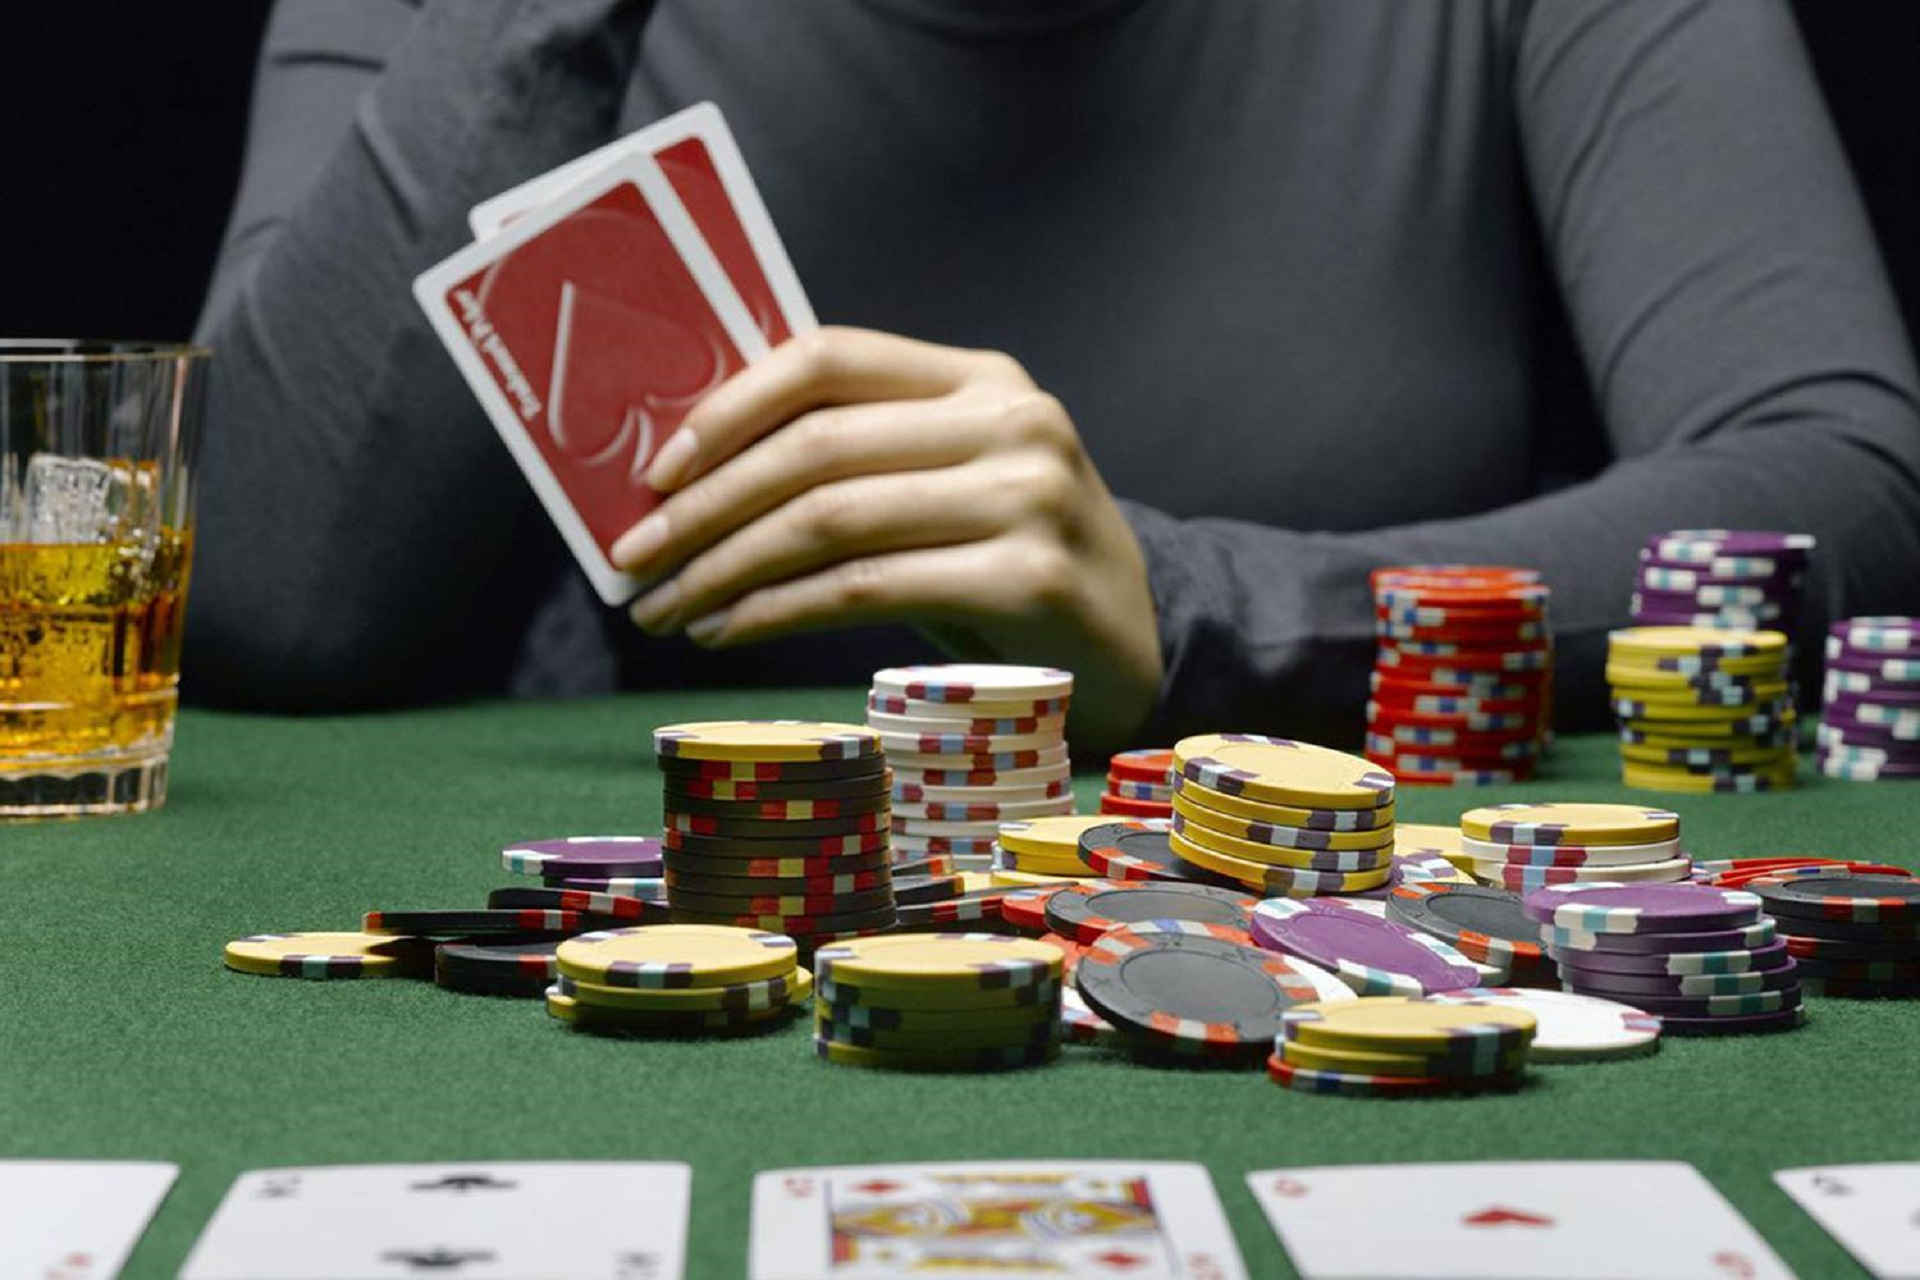 Why Should You Never Be Gambling While Intoxicated